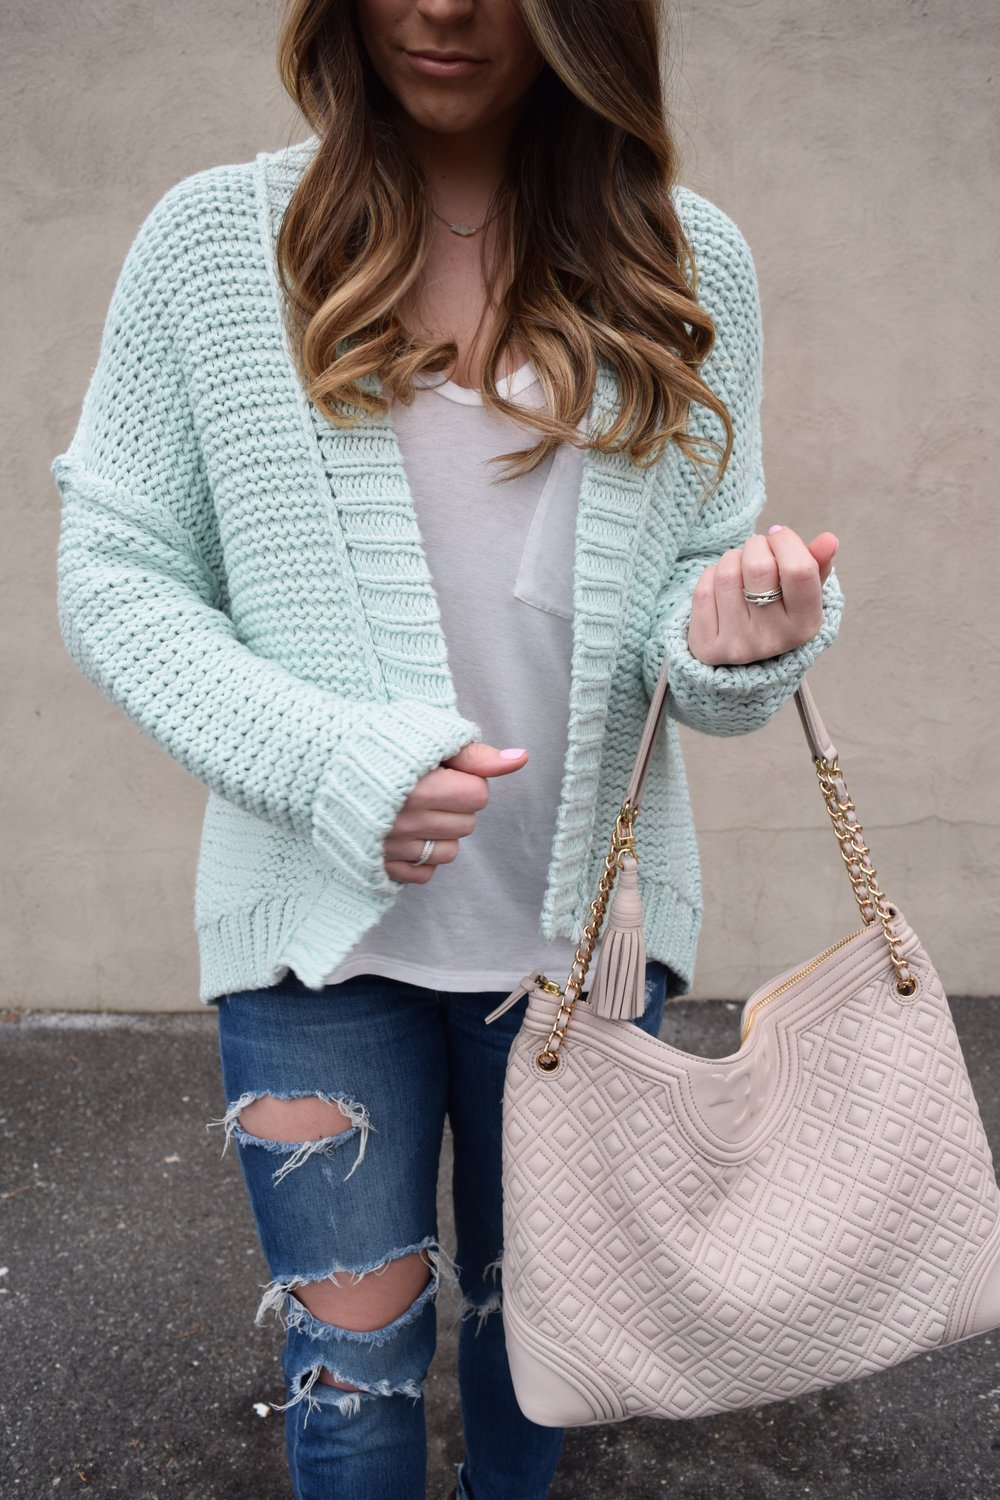 anthropologie mint cardigan, joe's jeans, tory burch bag, spring transition outfit